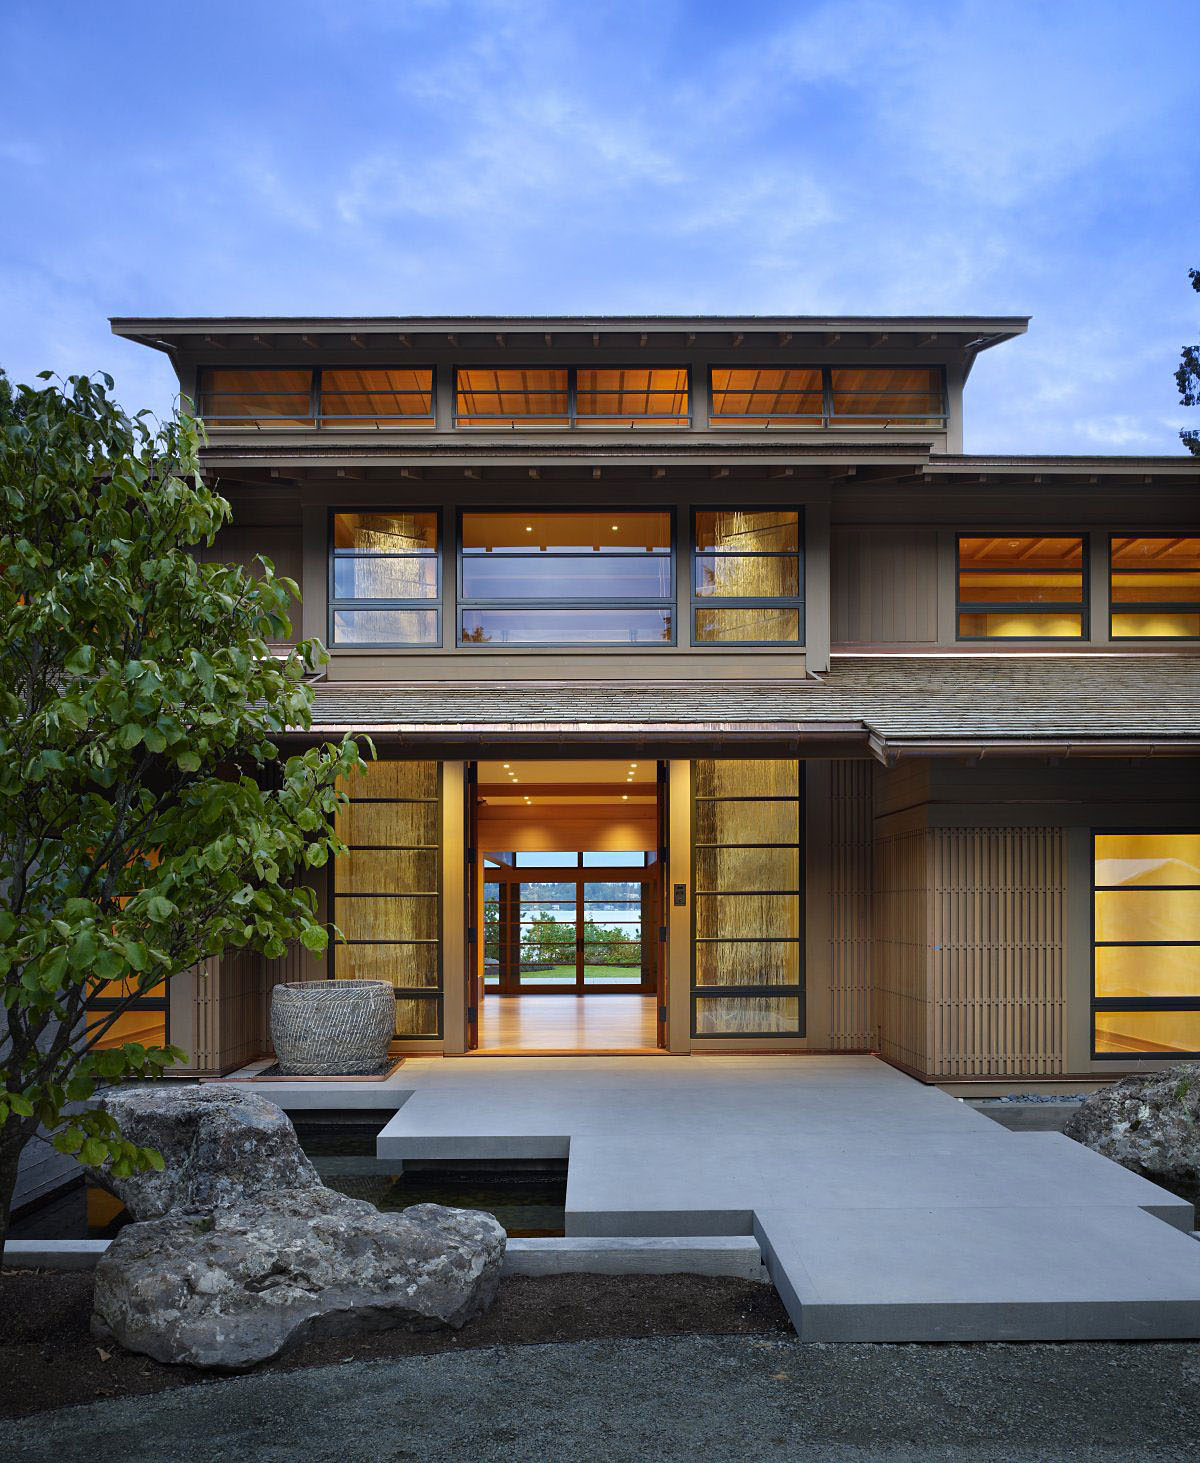 Contemporary Home Design: Contemporary House In Seattle With Japanese Influence